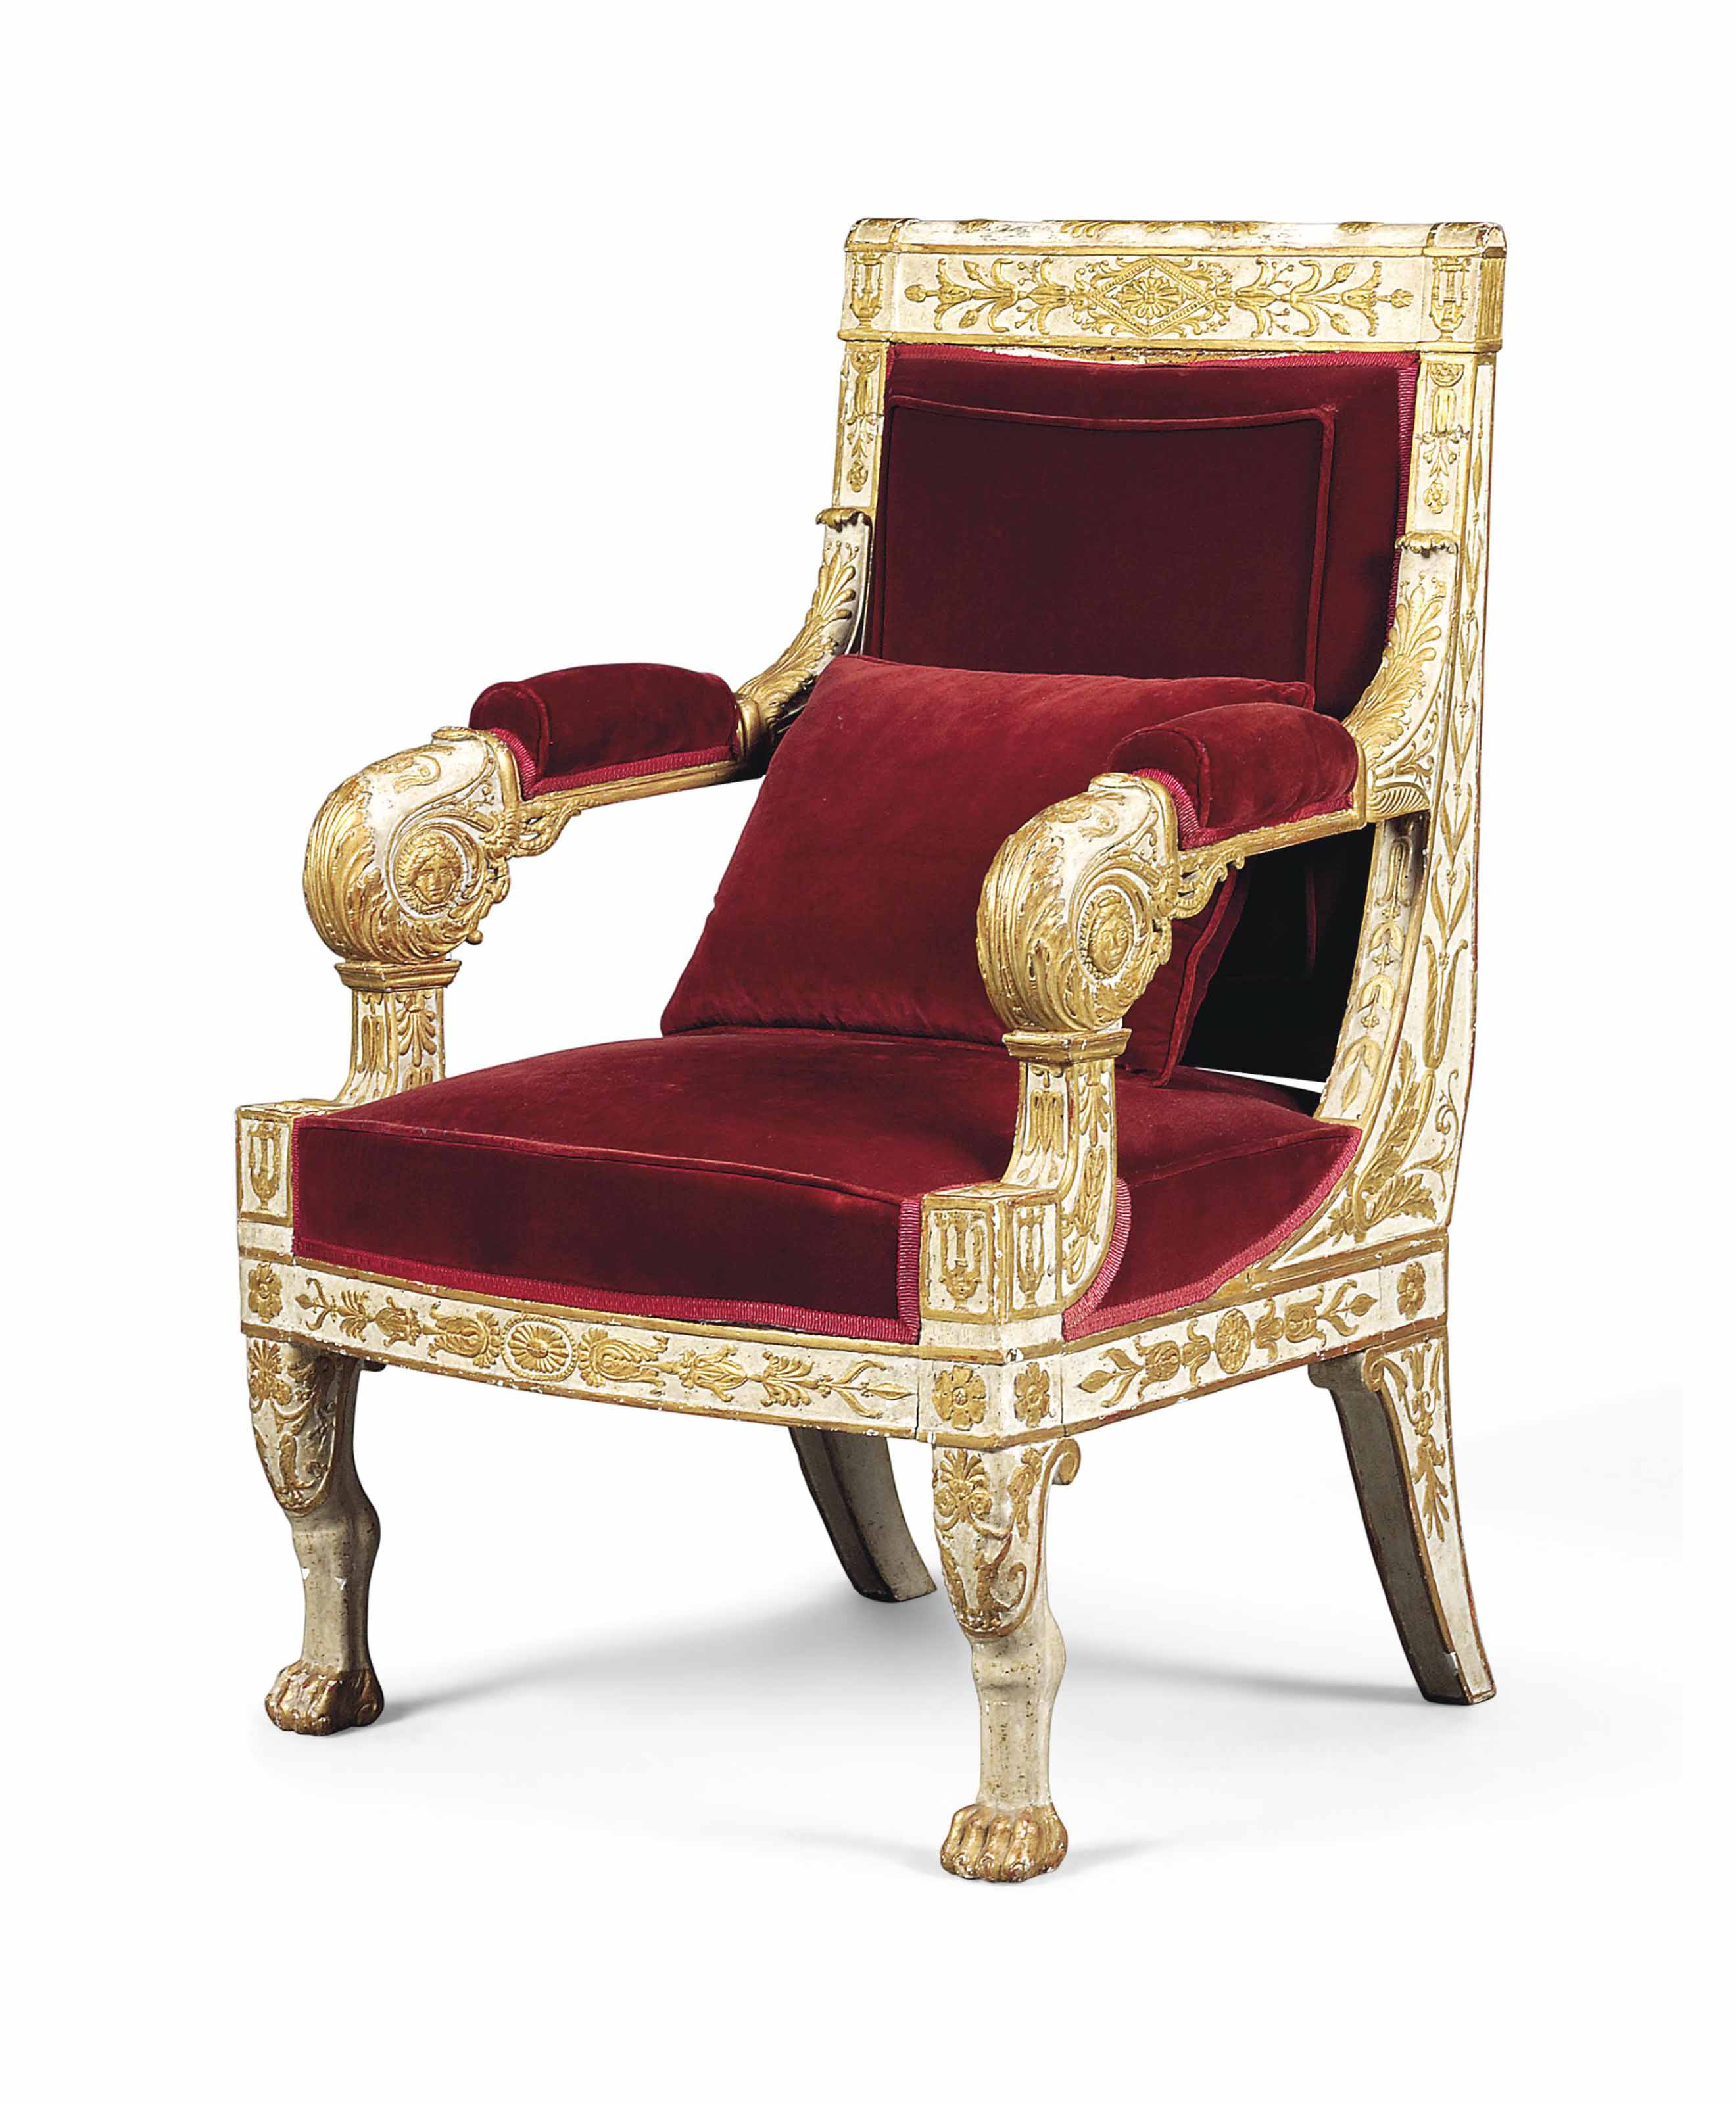 AN EMPIRE PARCEL-GILT AND WHITE-PAINTED FAUTEUIL